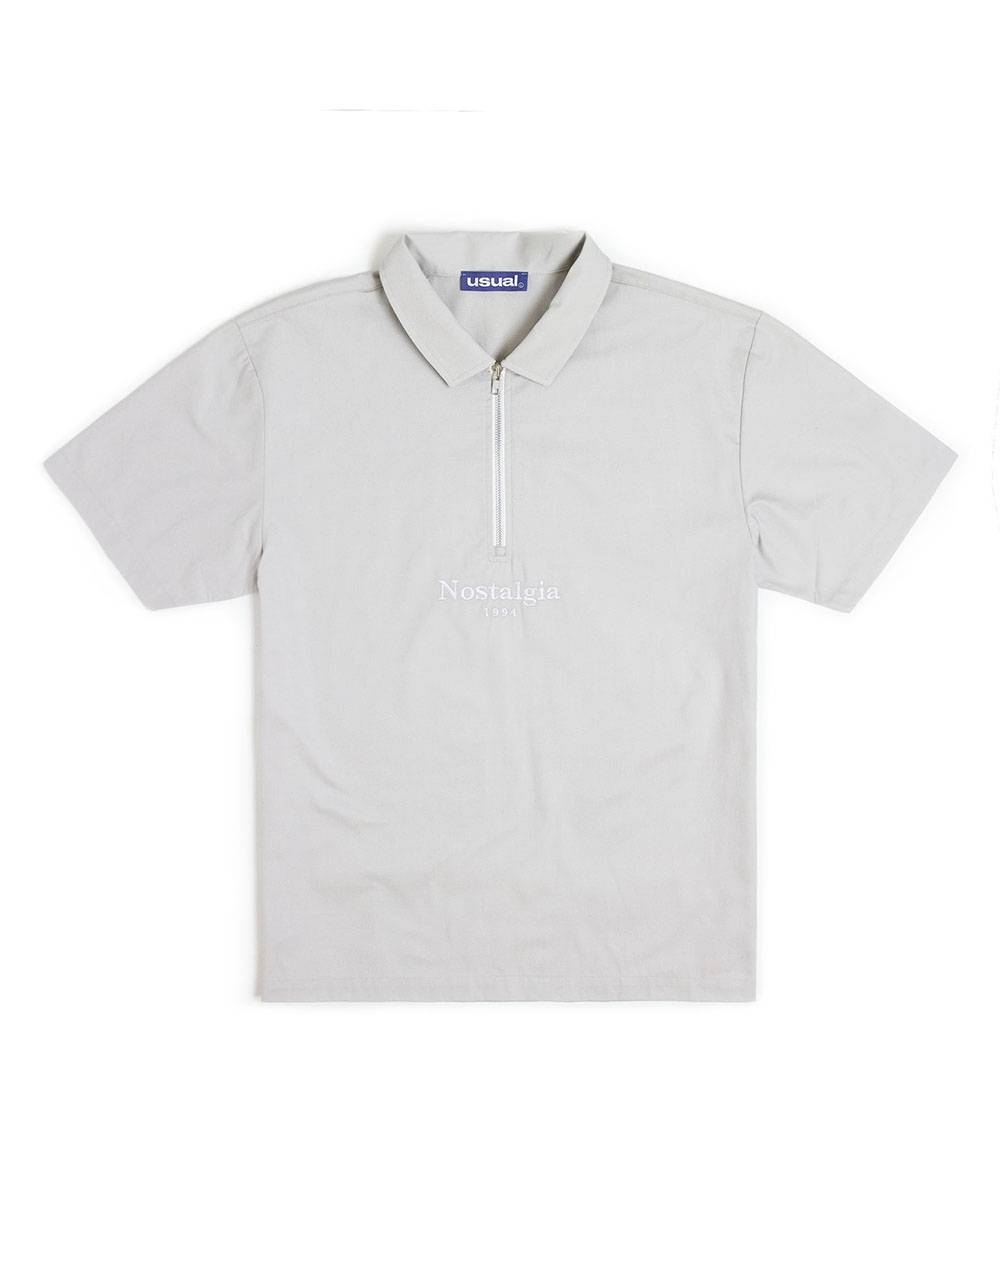 Nostalgia 1994 by Usual half zip shirt - stone Usual Shirt 86,07€